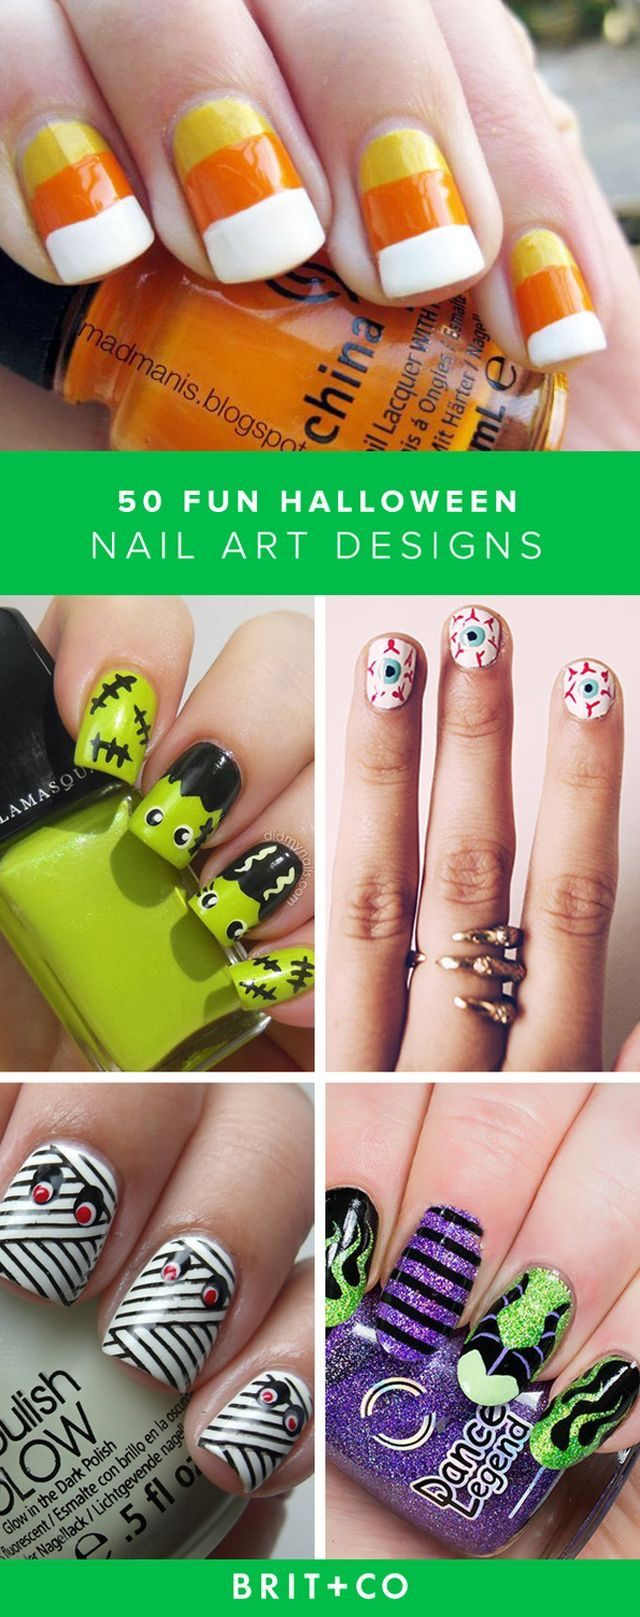 Pin by Aimee Weckmann on nails | Pinterest